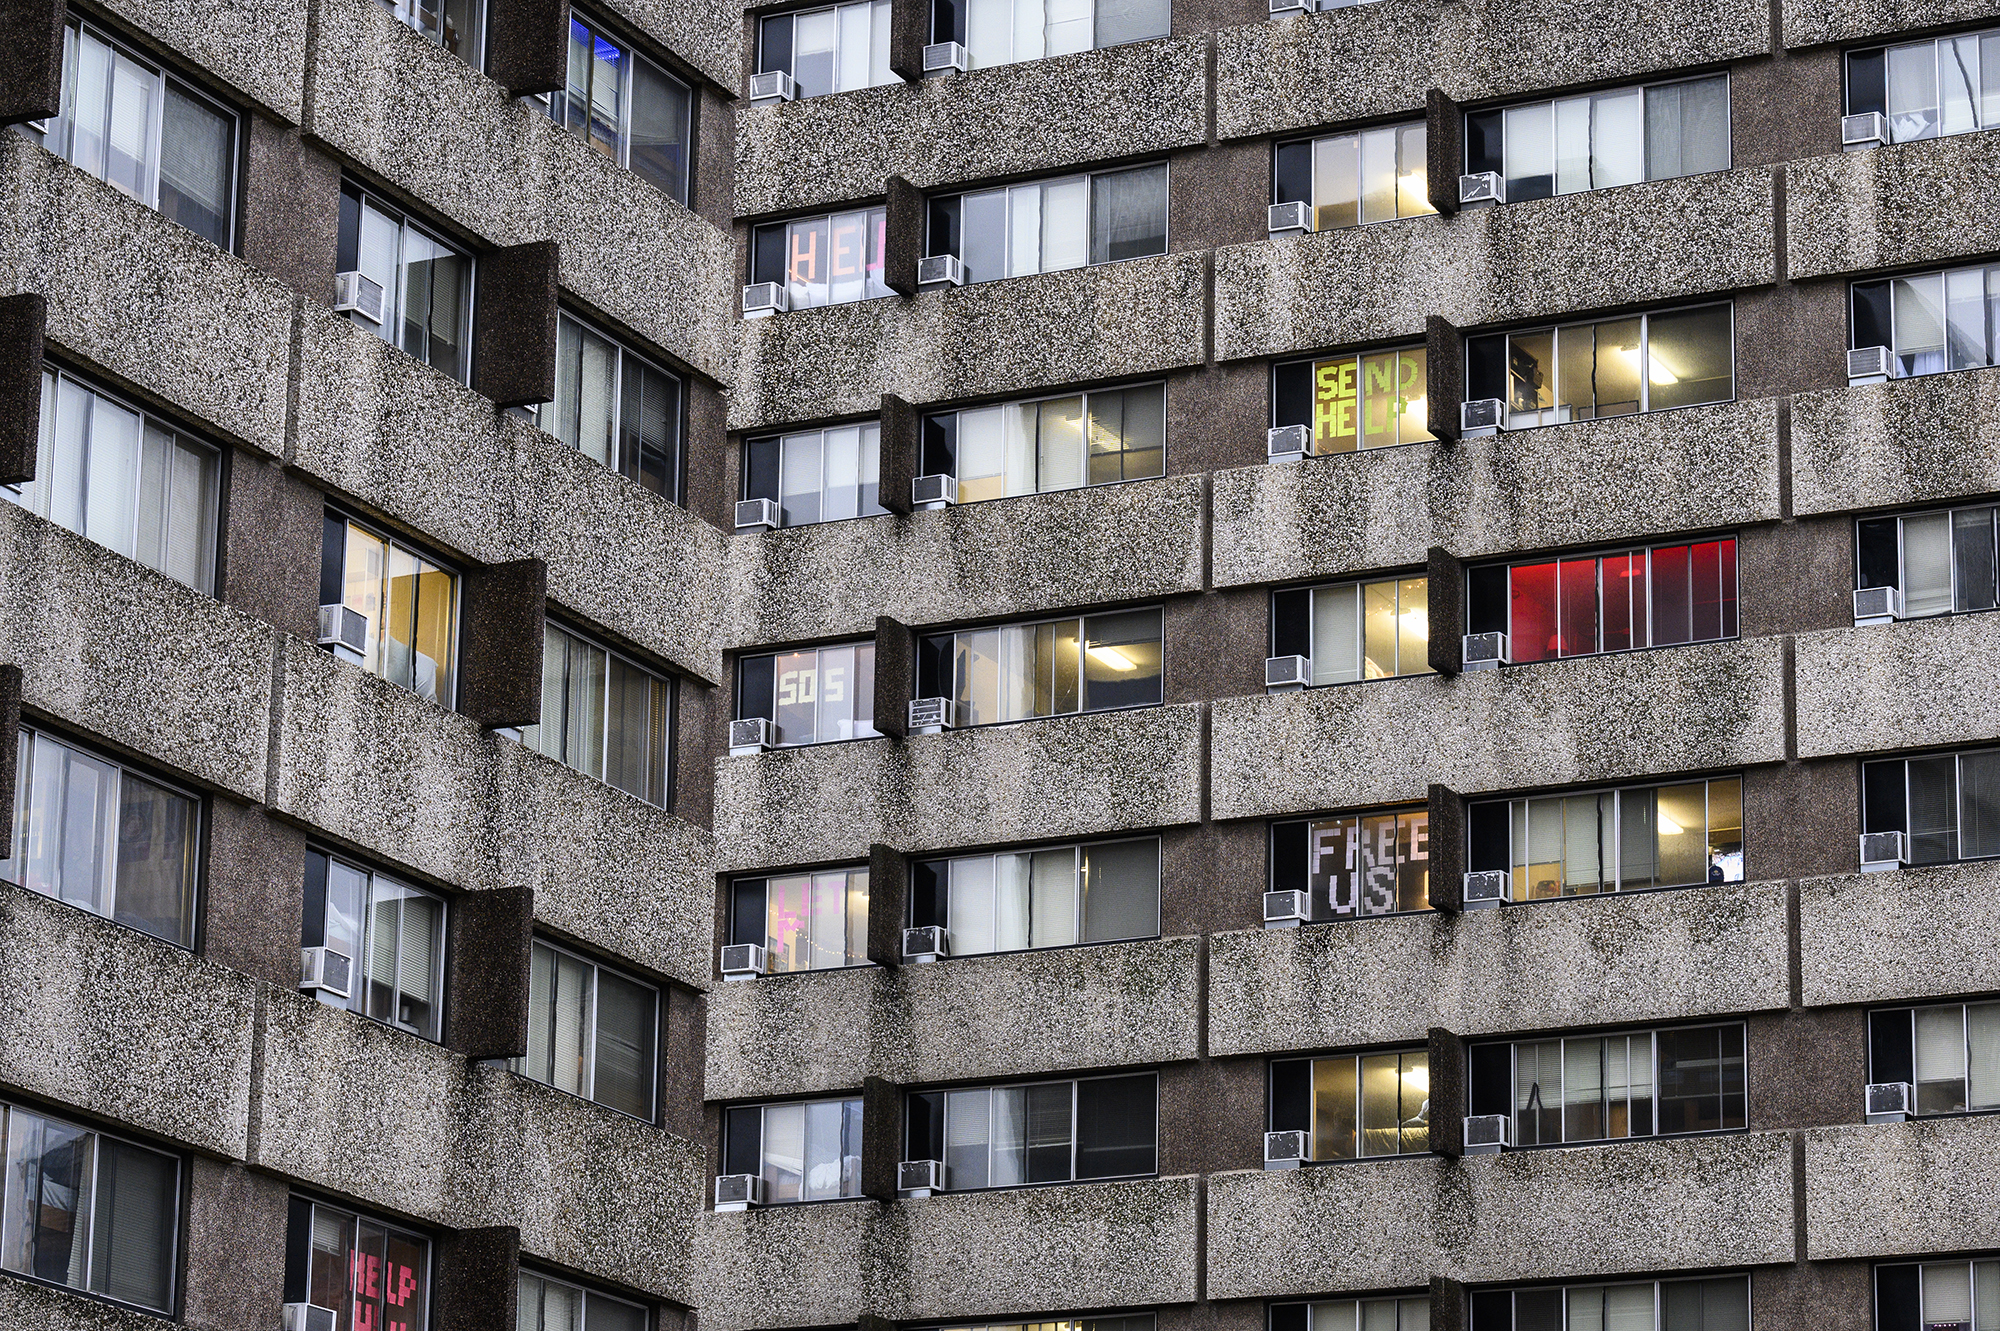 Outside view of dorm room windows where quarantined students have written messages